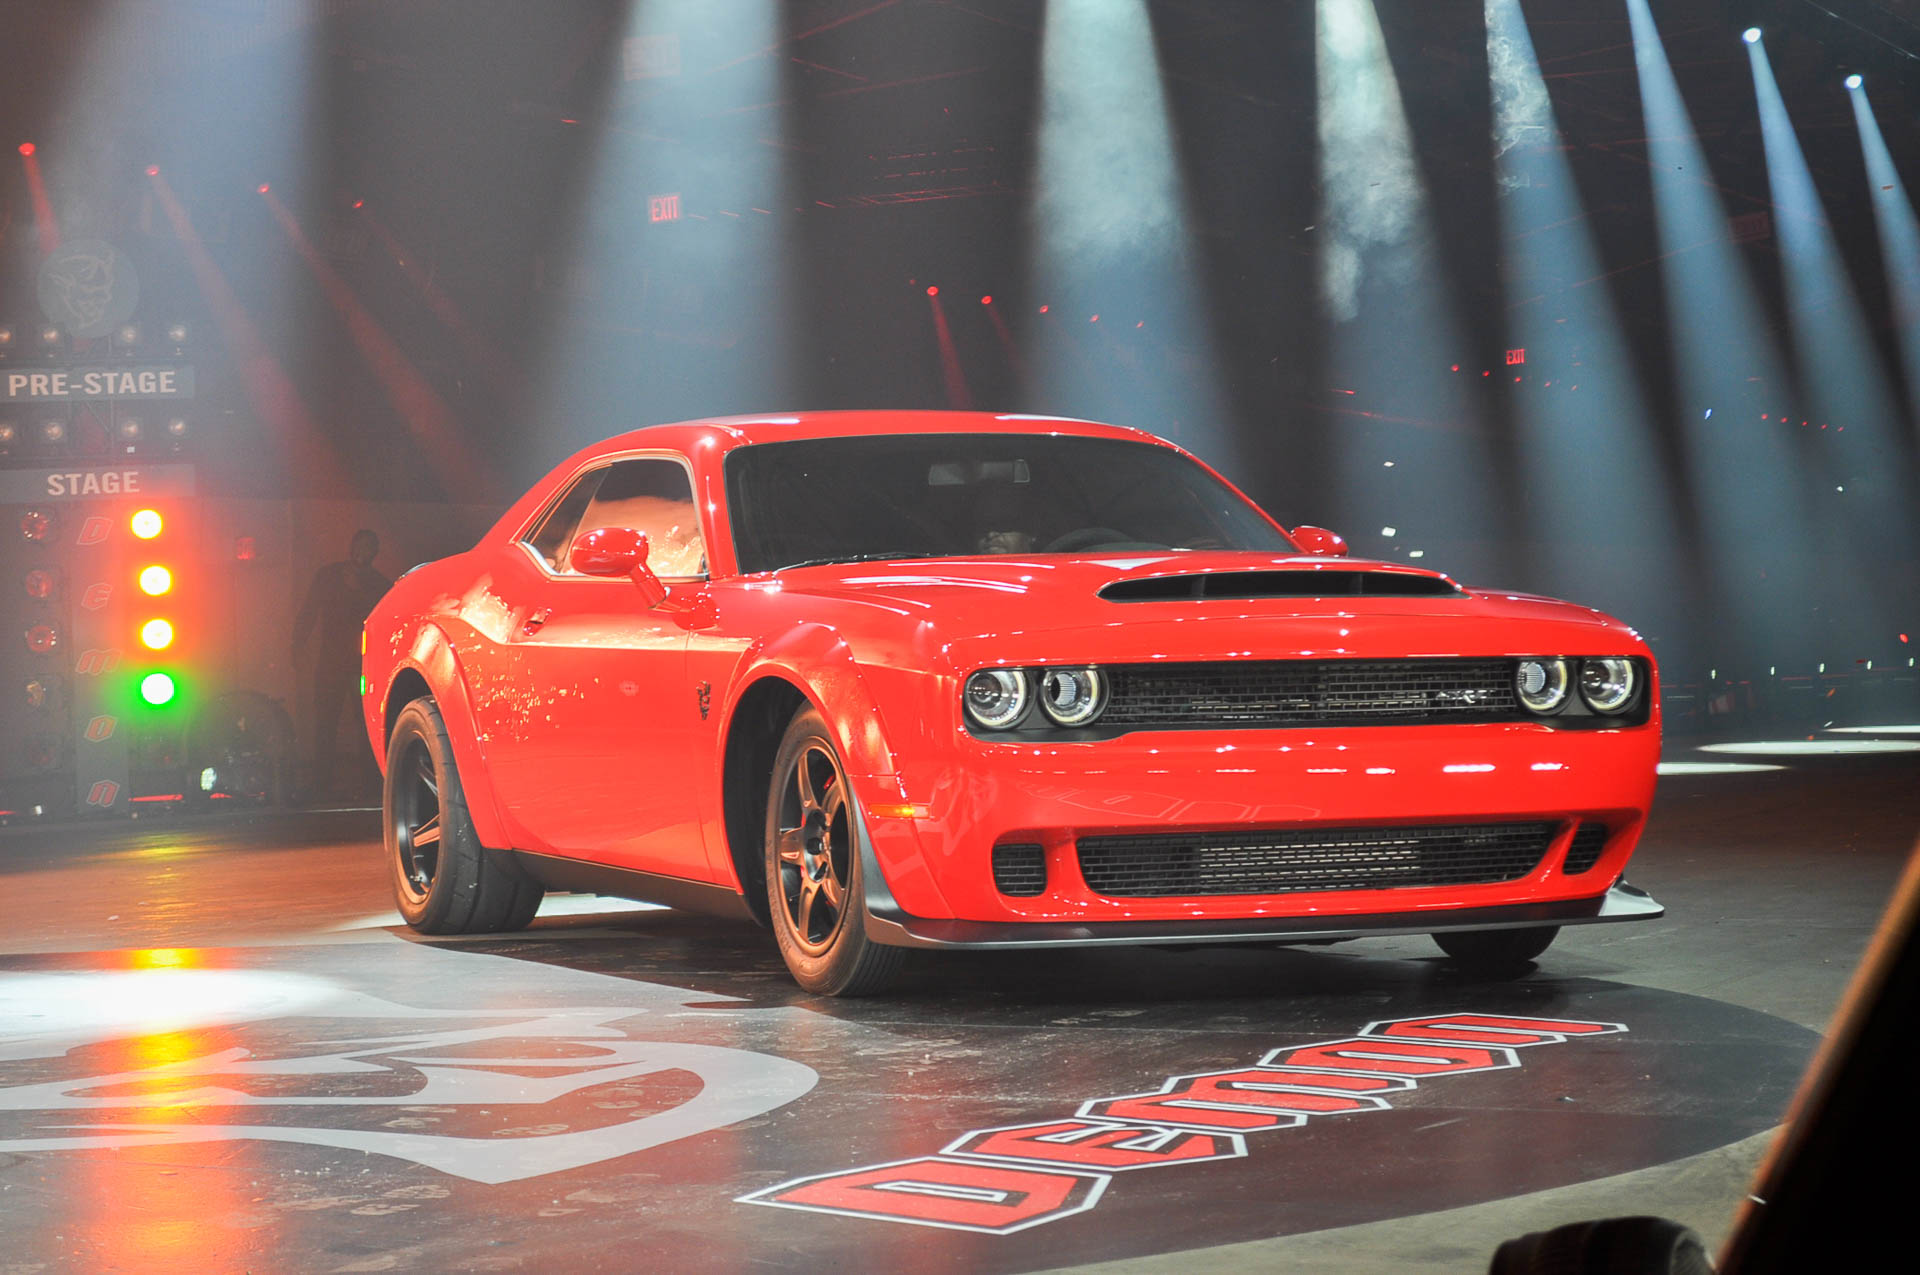 Dodge can't stop dealers from pricing Demons above MSRP, but is taking some measures | Autozaurus